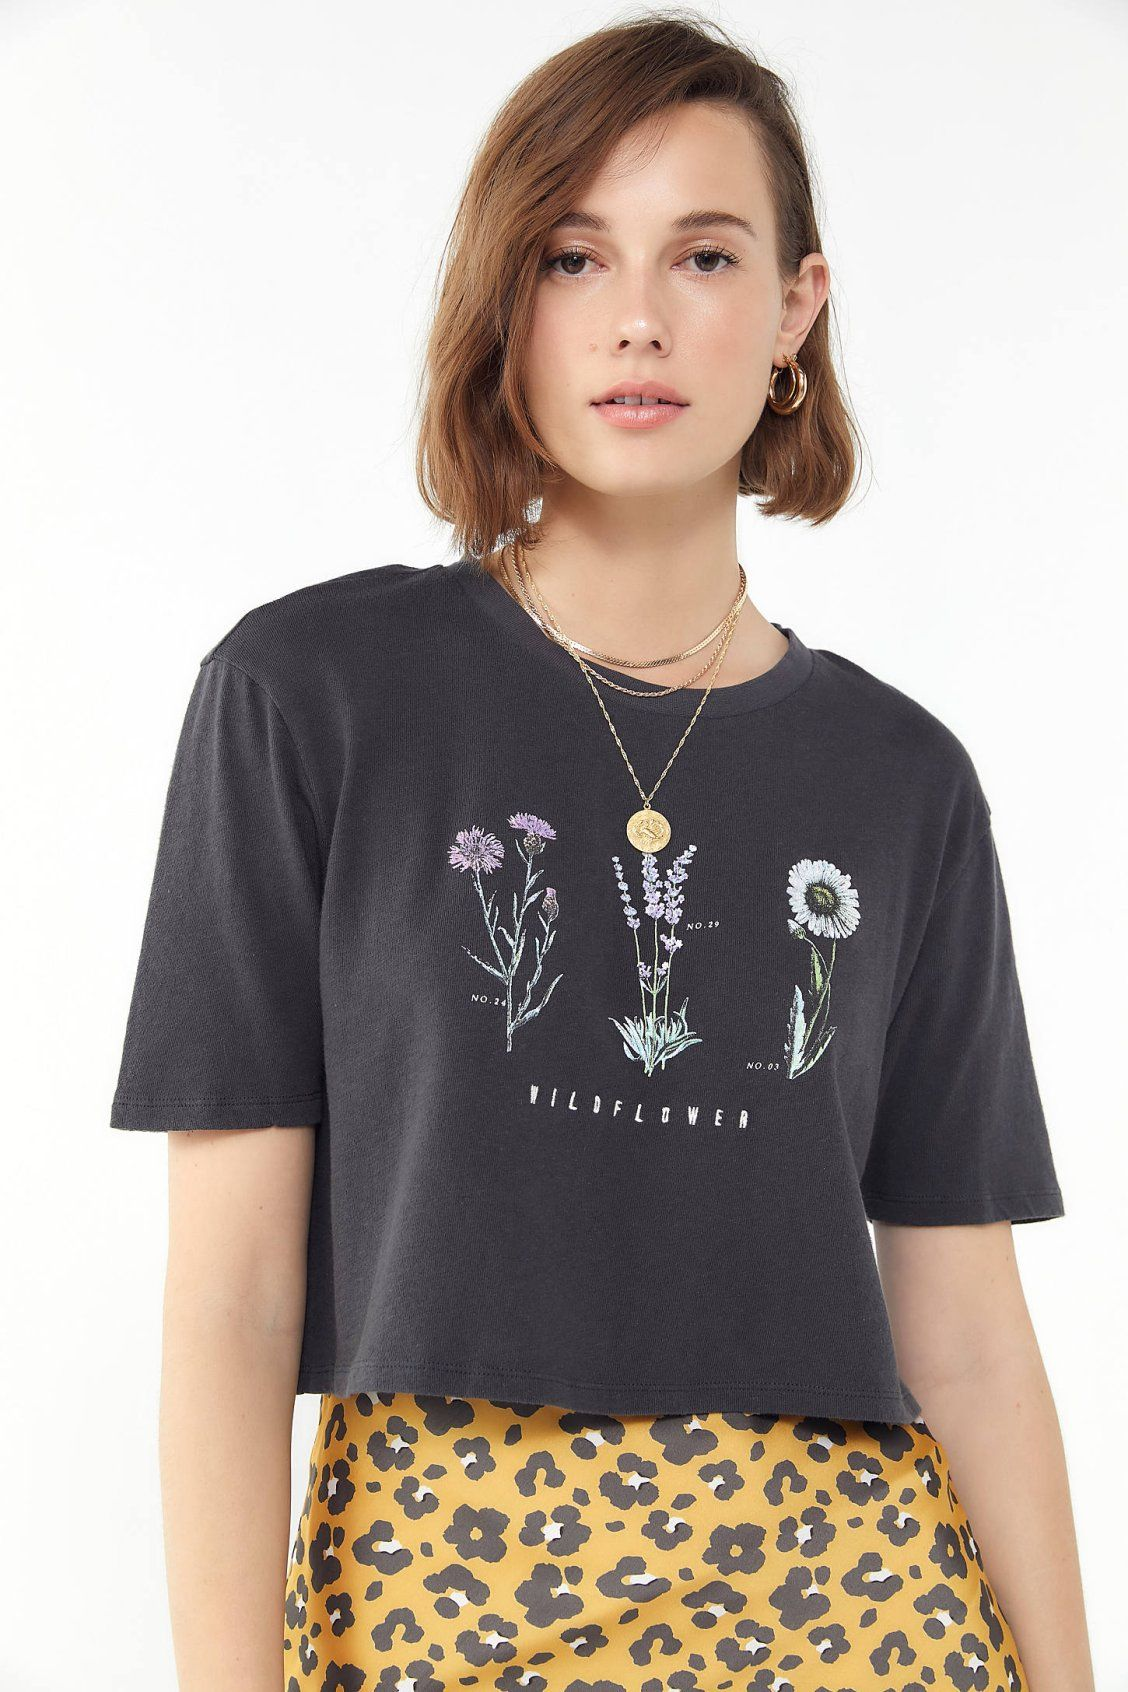 8261b3c9a9997 Embroidered Wildflower Cropped Top in 2019